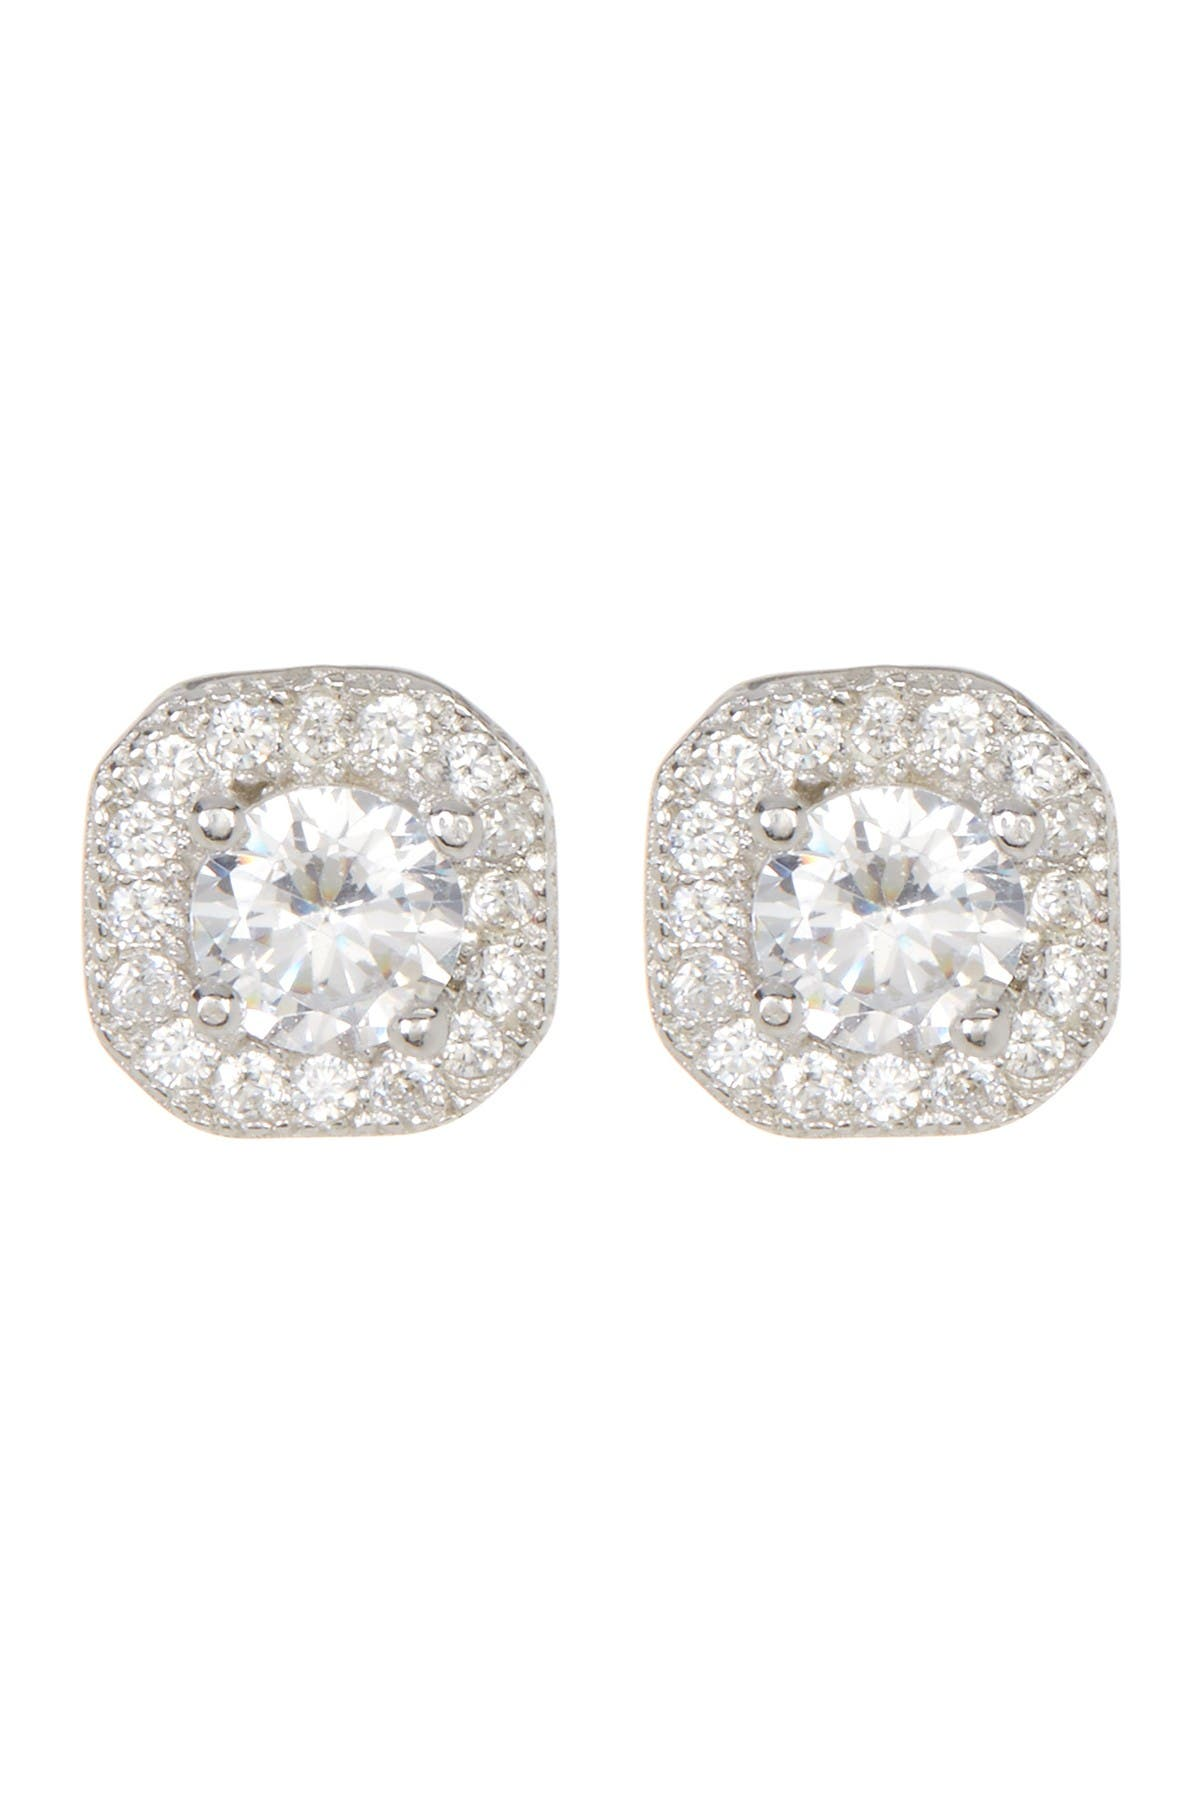 Image of ADORNIA Sterling Silver Prong & Halo Set Swarovski Crystal Accented Stud Earrings